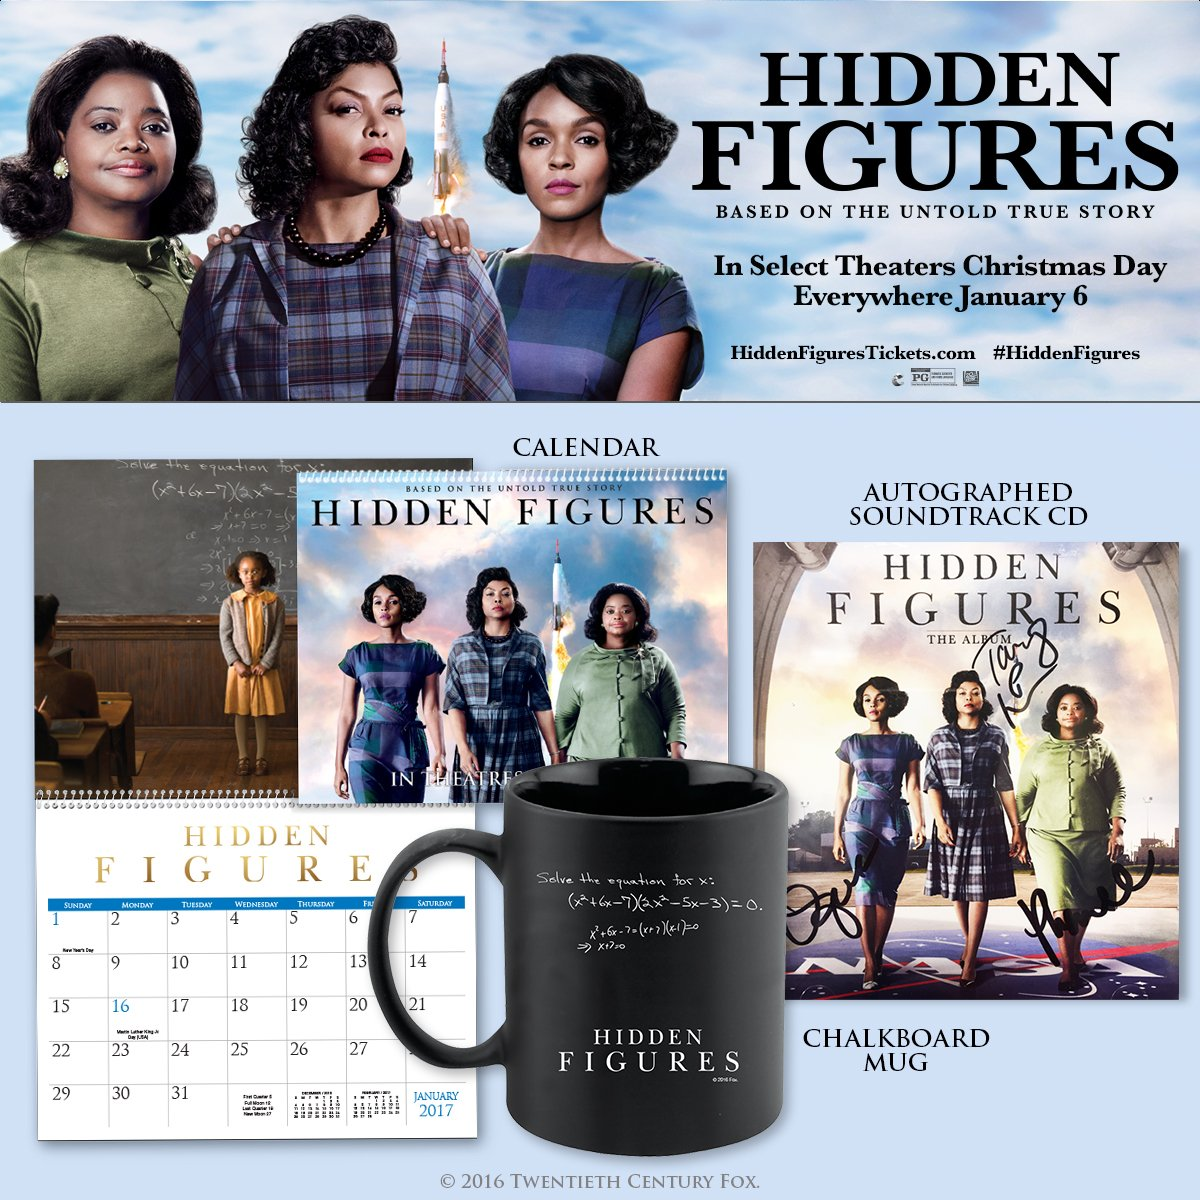 RT for a chance to win this #HiddenFigures movie prize pack featuring an autographed soundtrack CD! #giveaway https://t.co/ESshbp4RBG